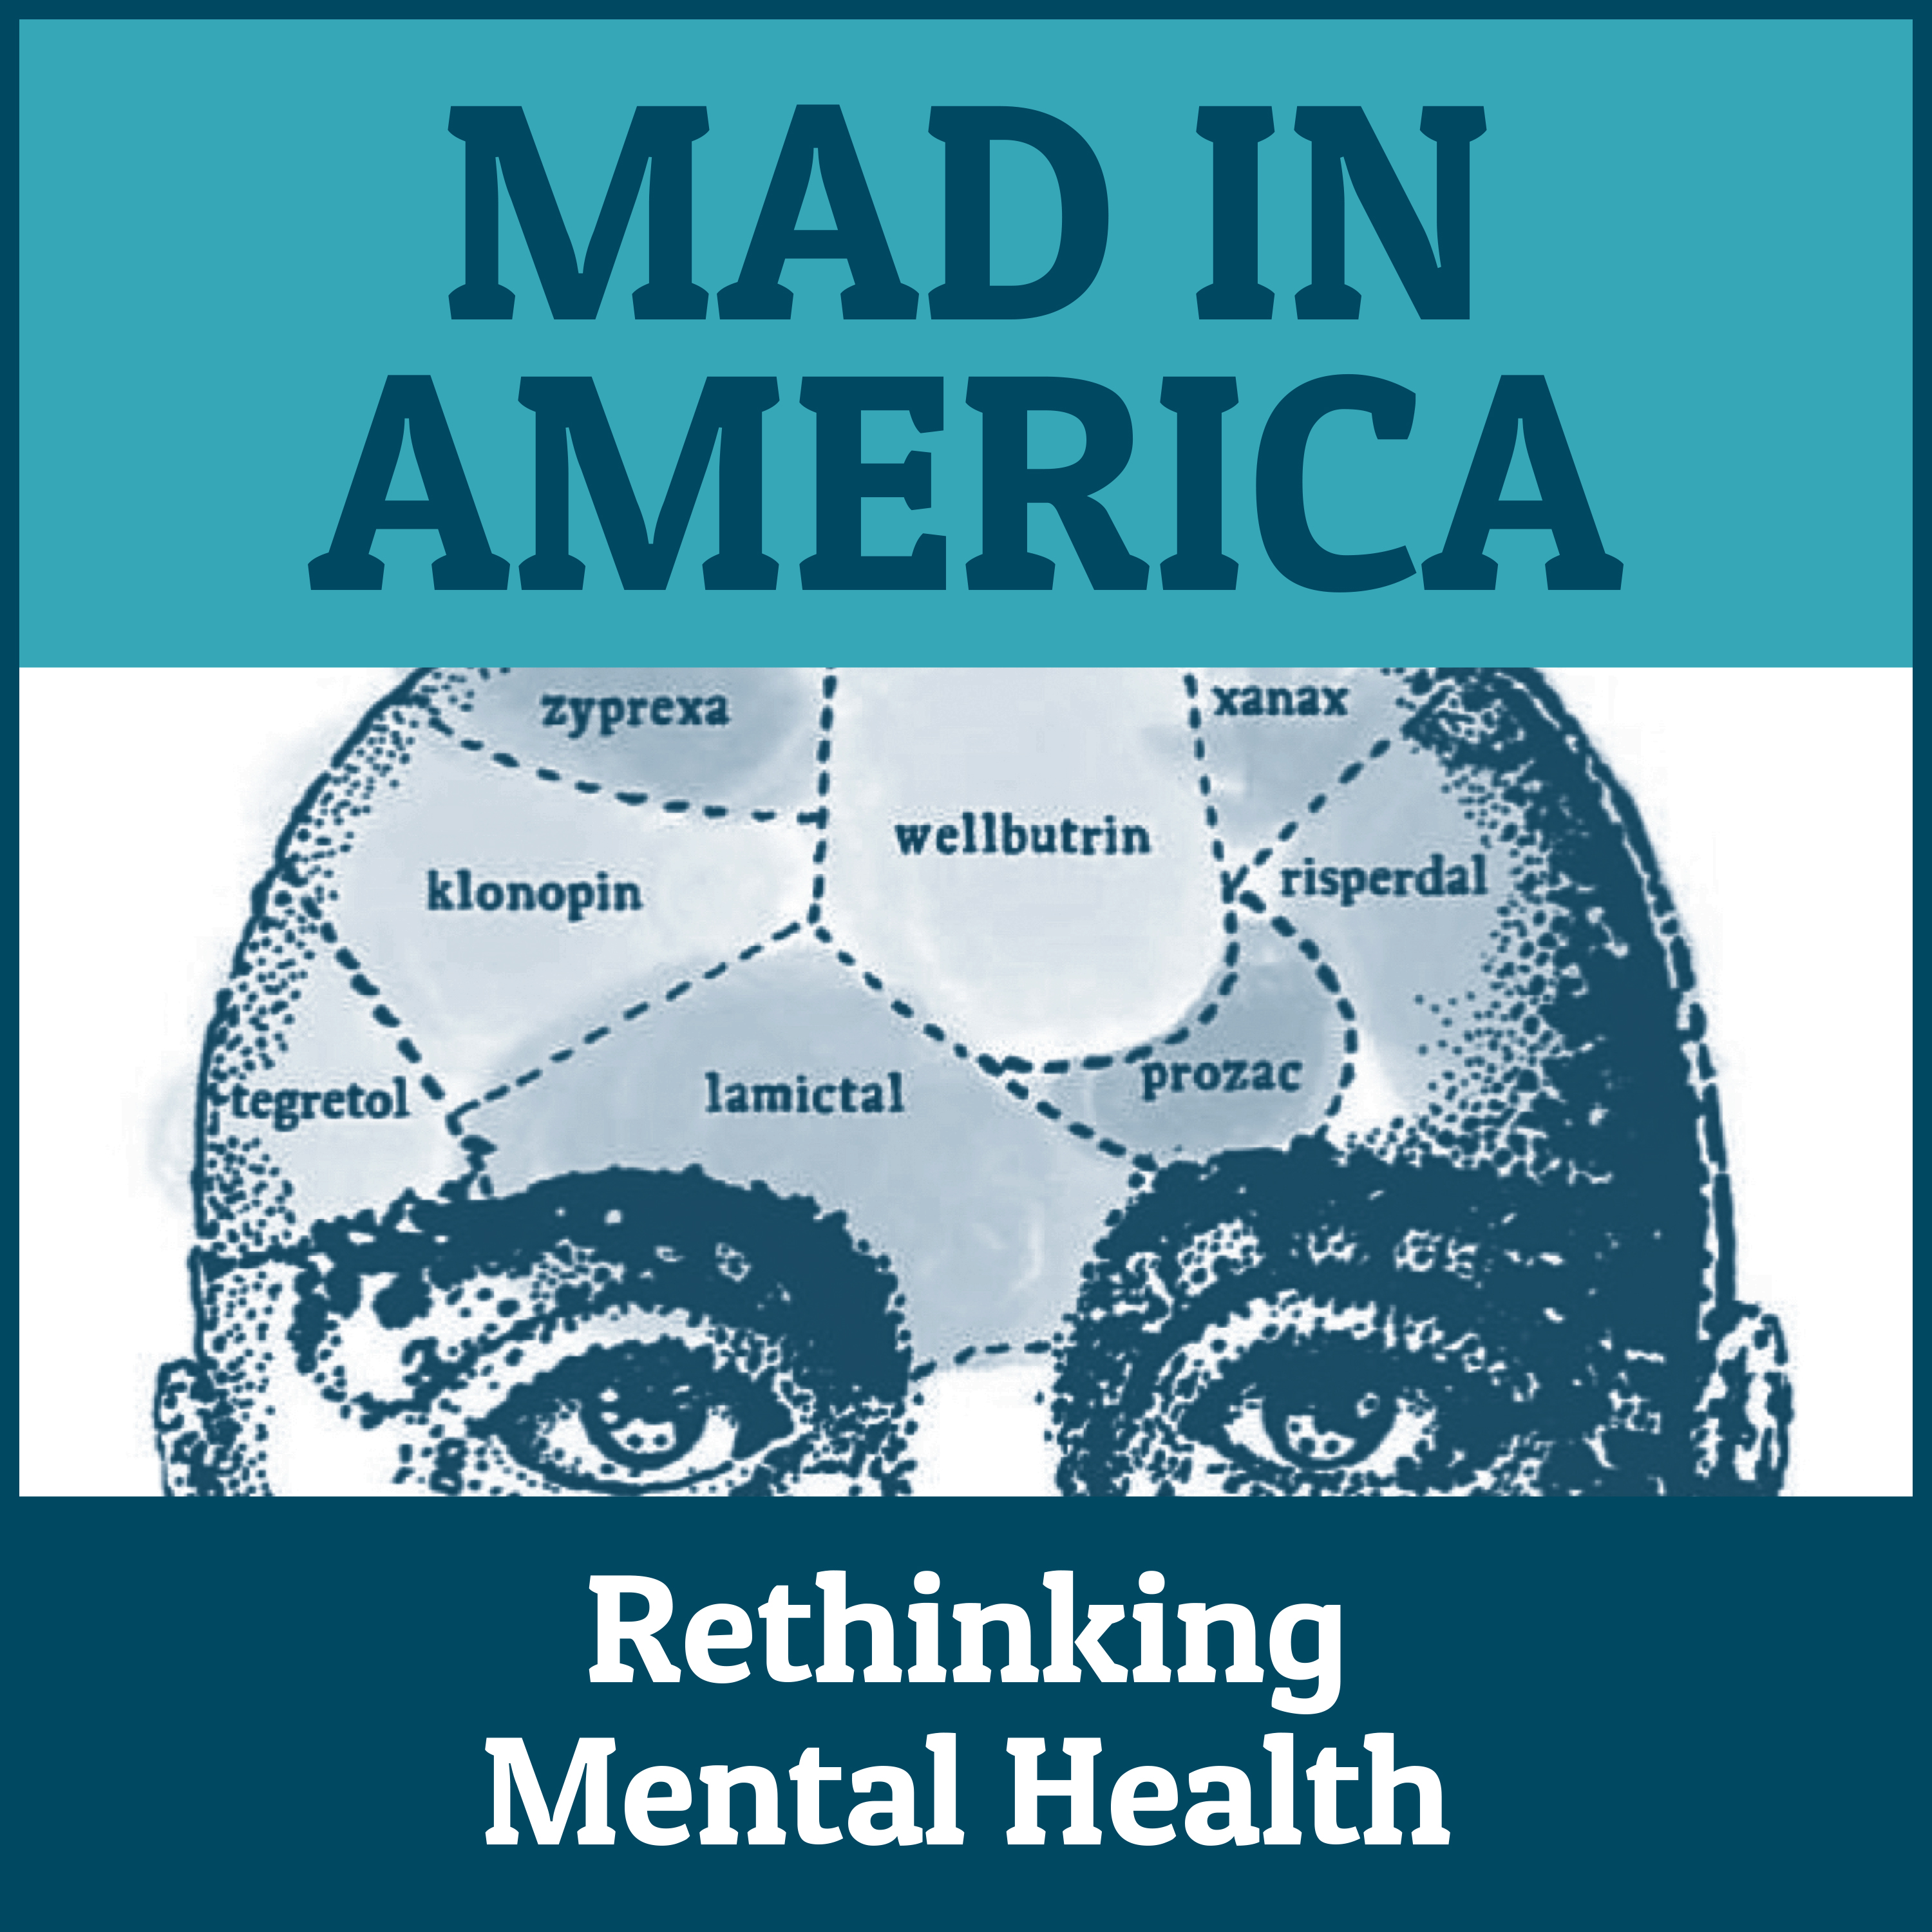 Mad in America: Rethinking Mental Health - Ilana Mountian - Discourse, Drug Use, and Psychiatry